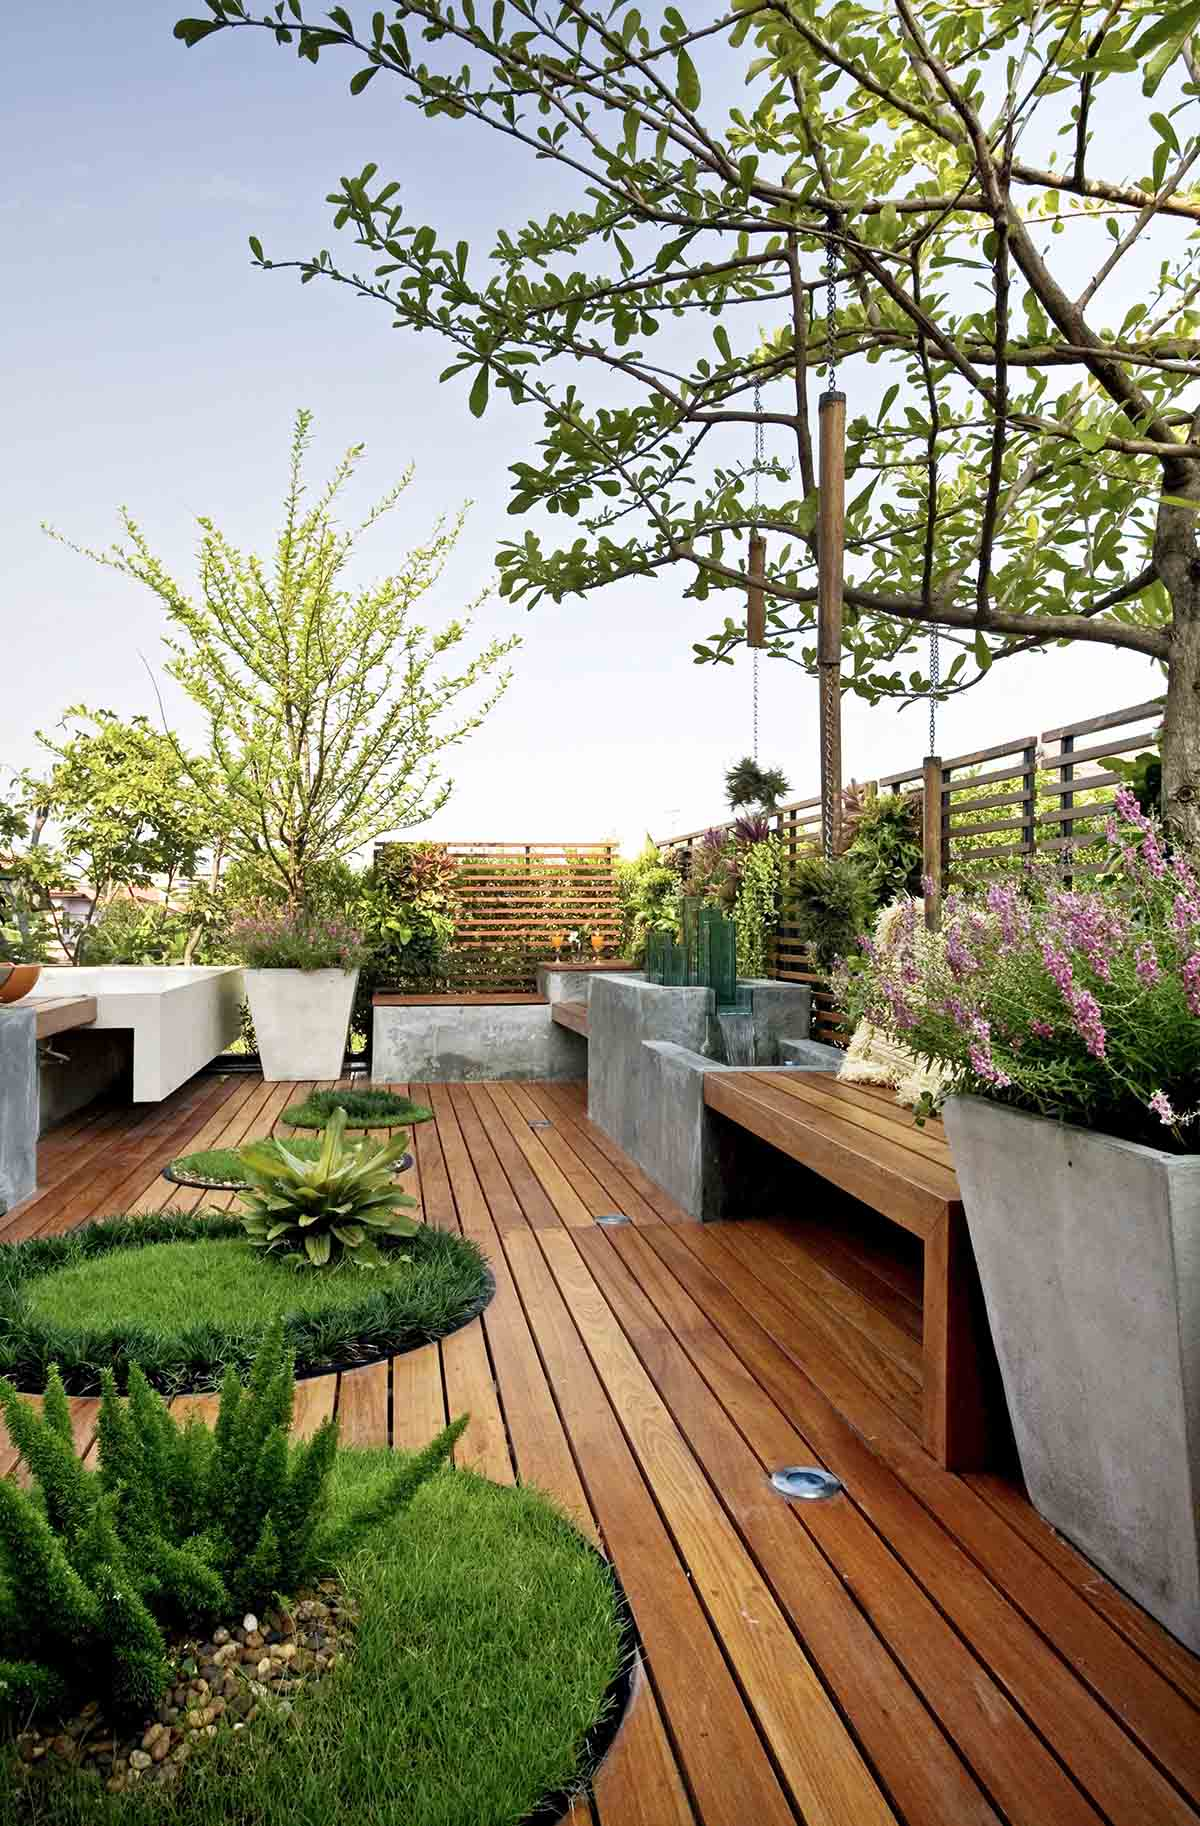 Best BuiltIn Planter Ideas And Designs For - Backyard planter ideas